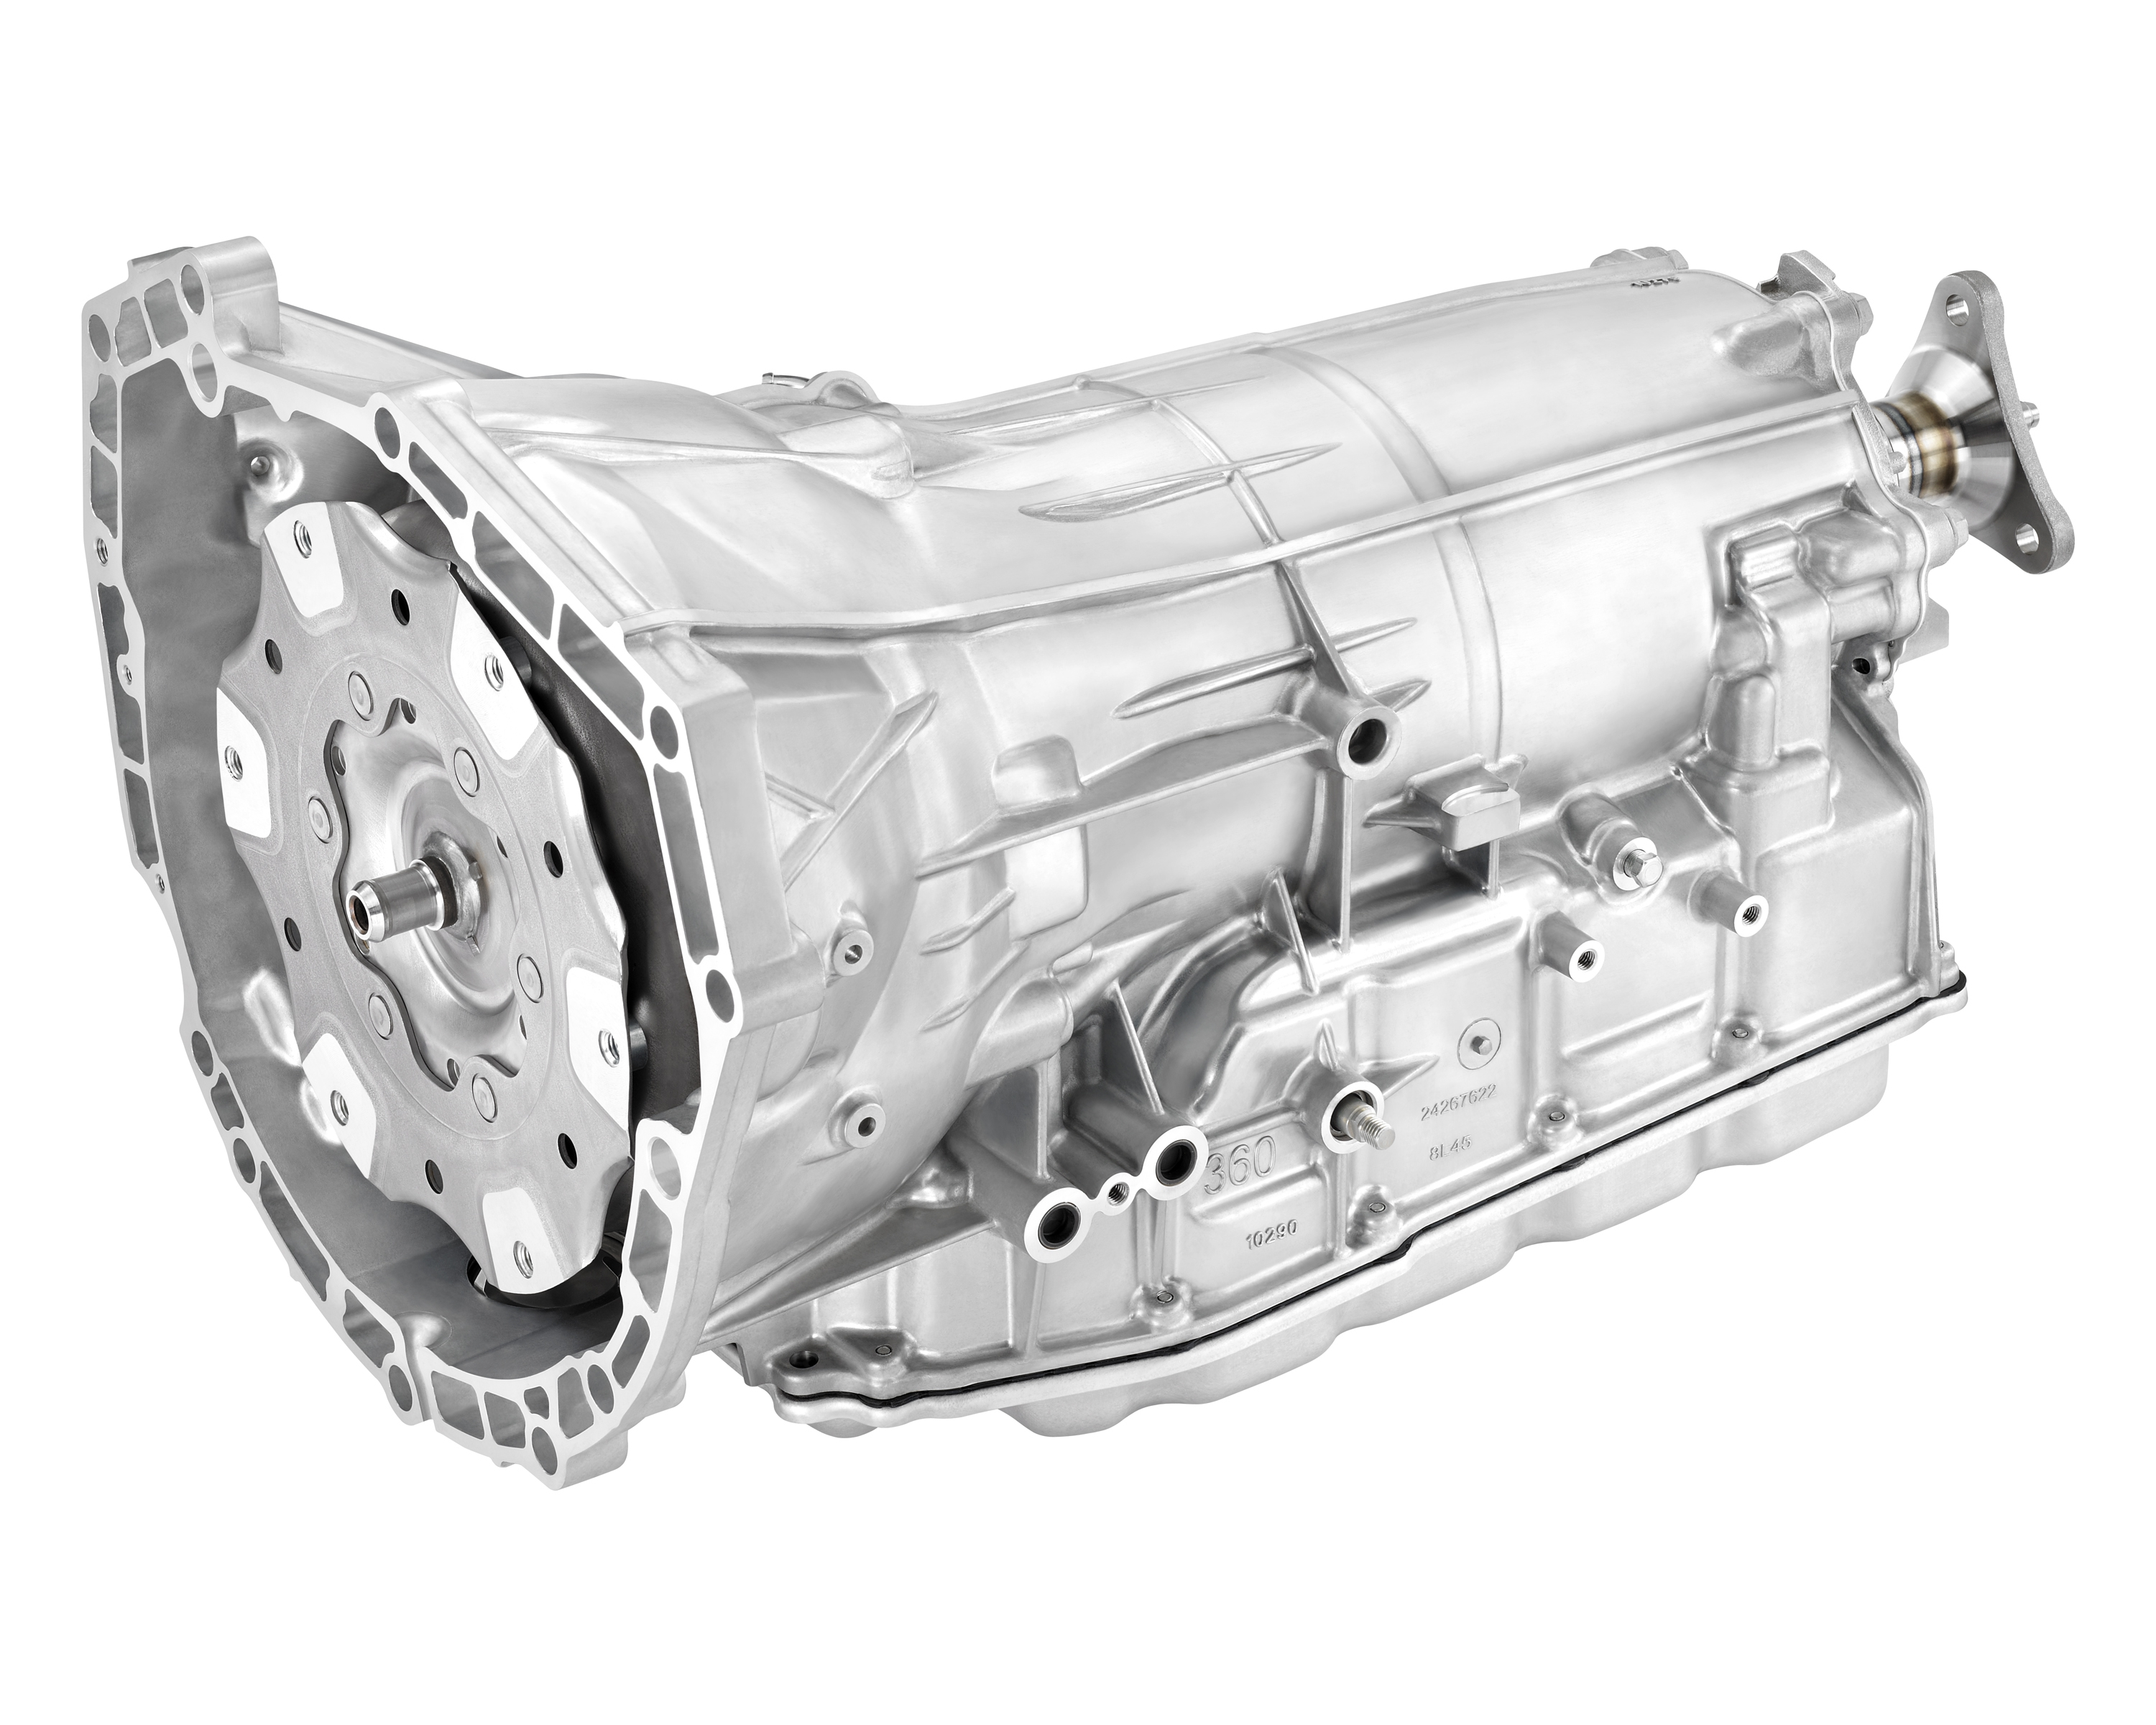 2016-Cadillac-CT6-Powertrain-AutoTrans-001.jpg